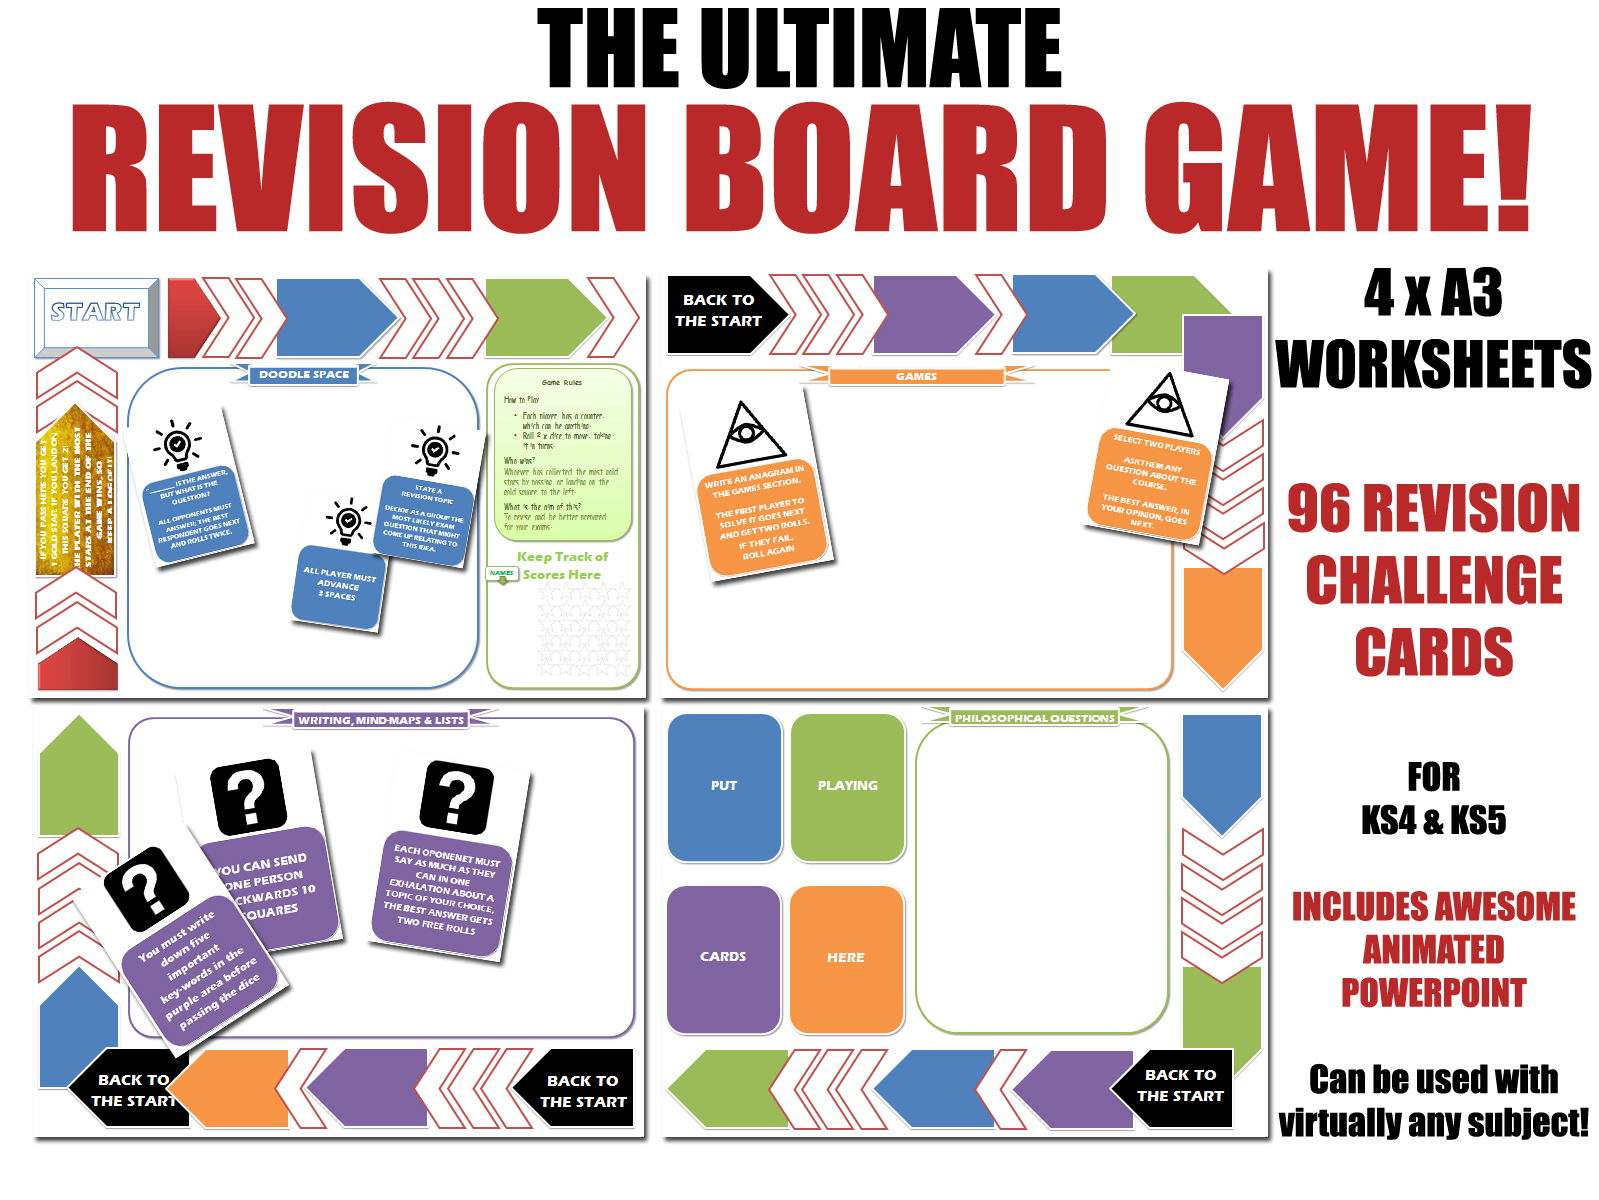 GCSE Physics - REVISION BOARD GAME